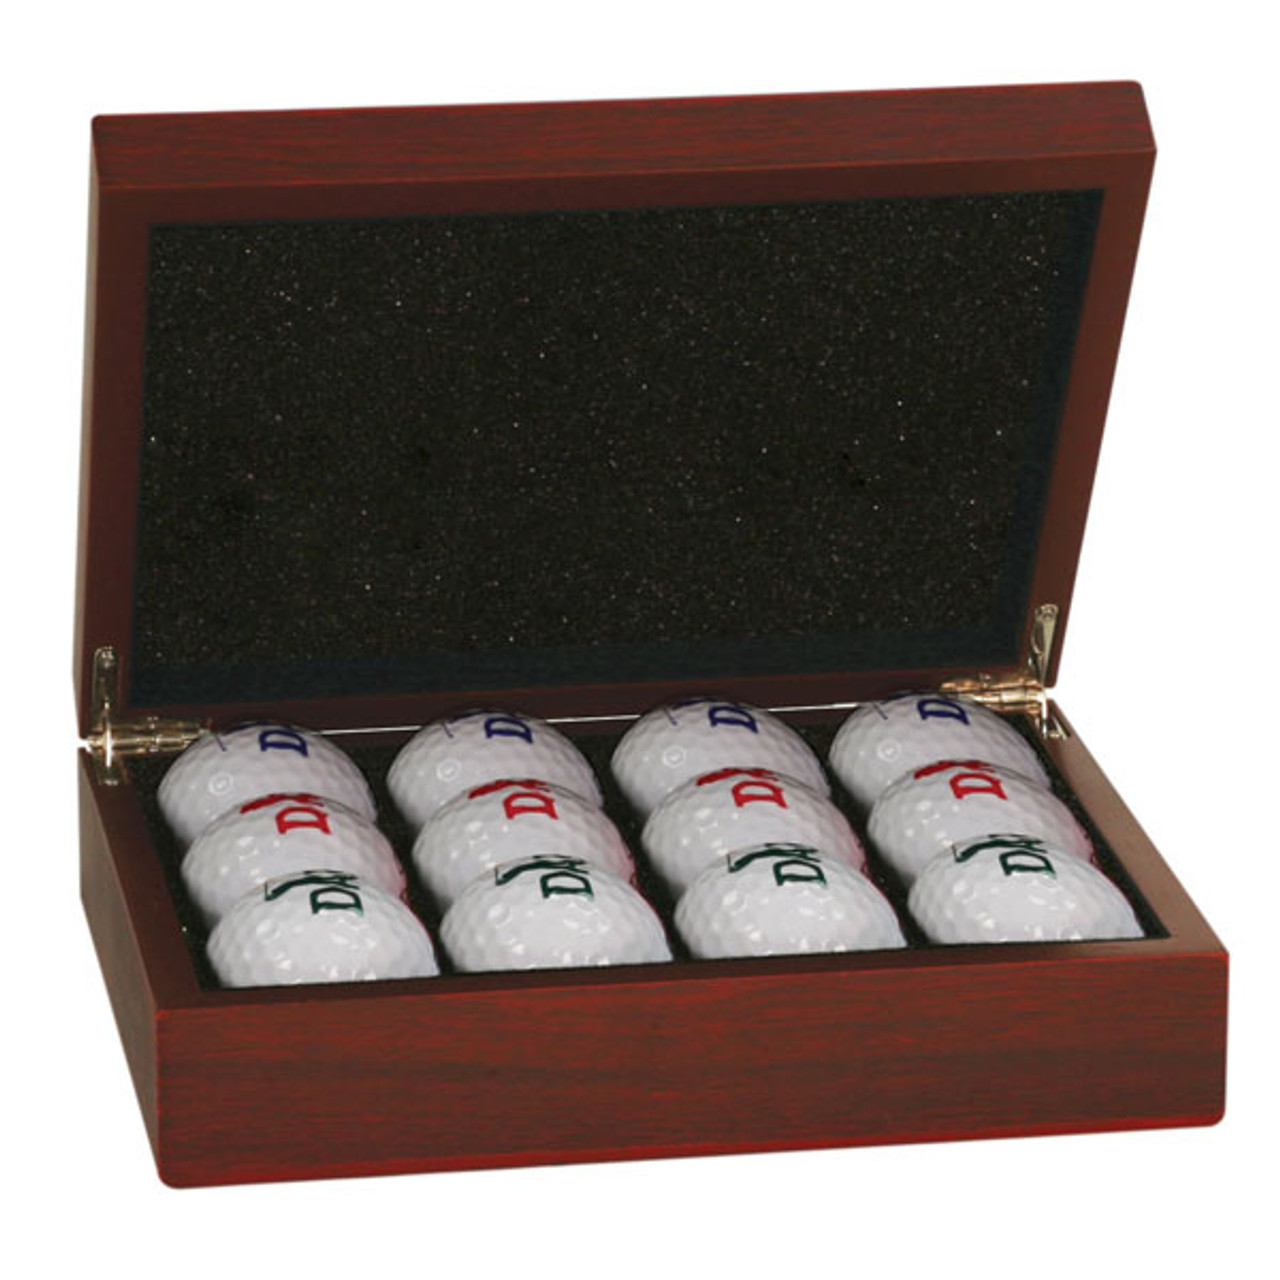 Rosewood Finish Golf Ball Box (balls not included)